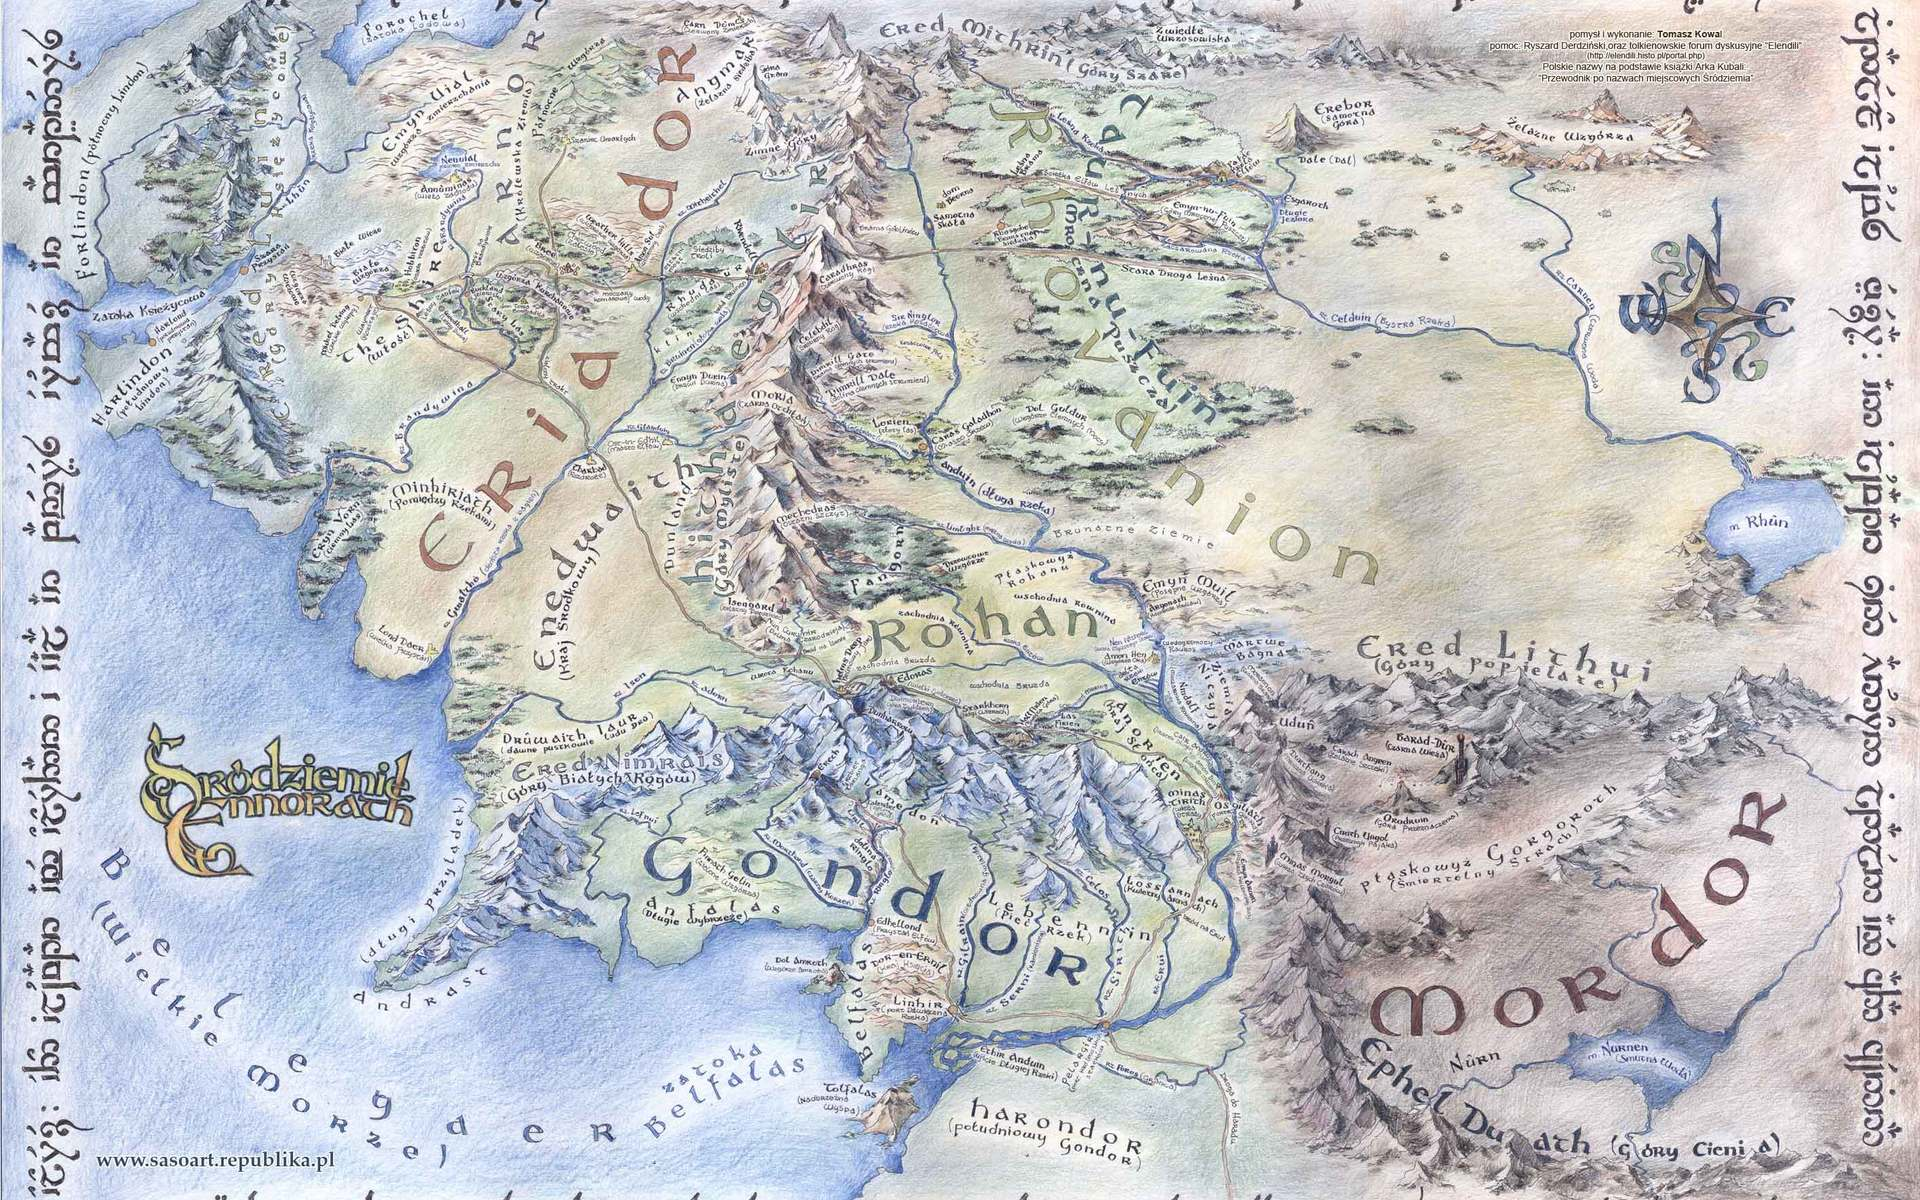 Lord Of The Rings Map Wallpaper WallpaperSafari – Lord of the Rings Detailed Map